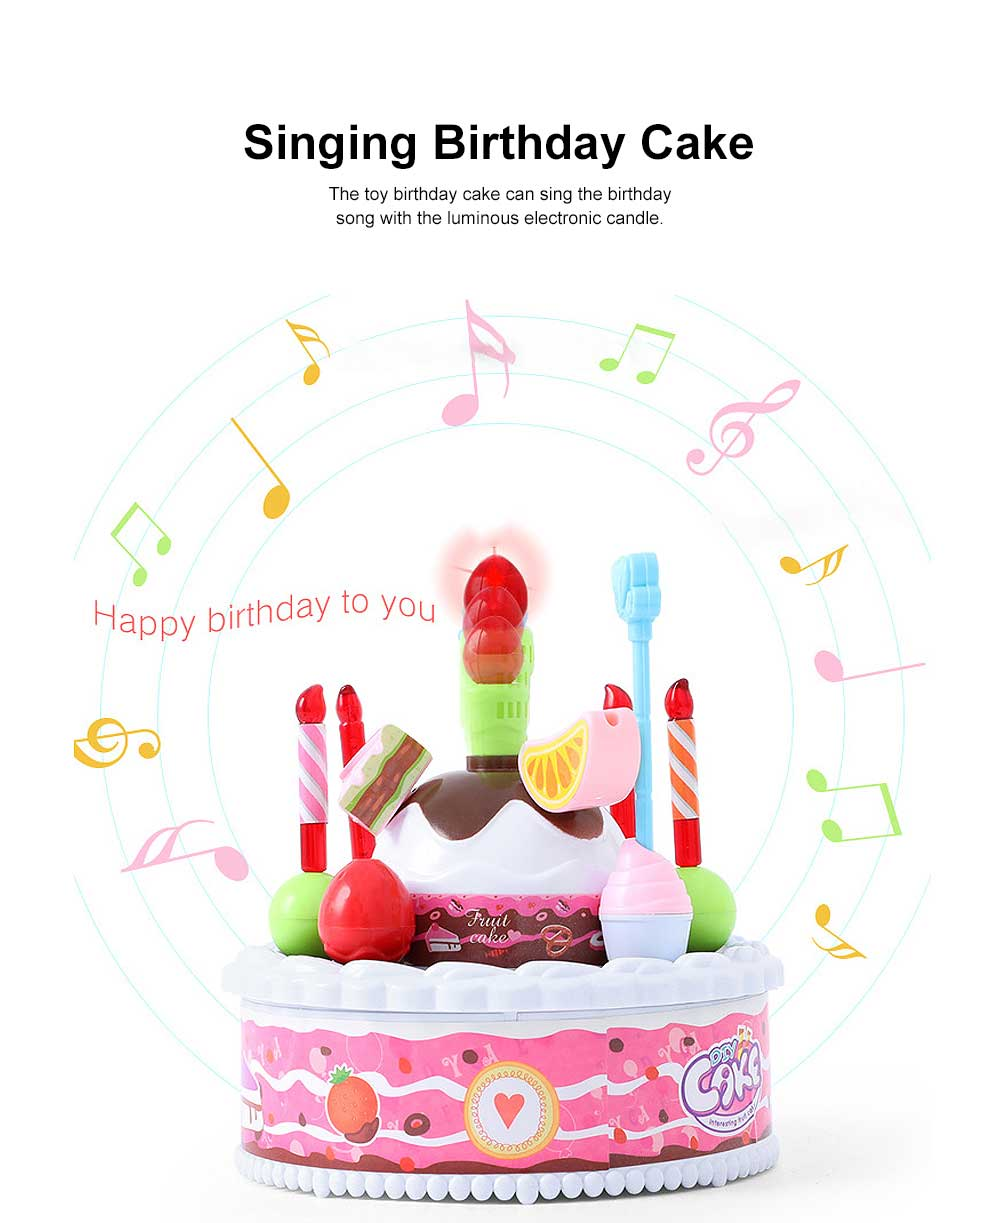 Birthday Cake Toy for Children & Kids, DIY Birthday Cake Model with Sound Recorder Function Birthday Present Gift 2